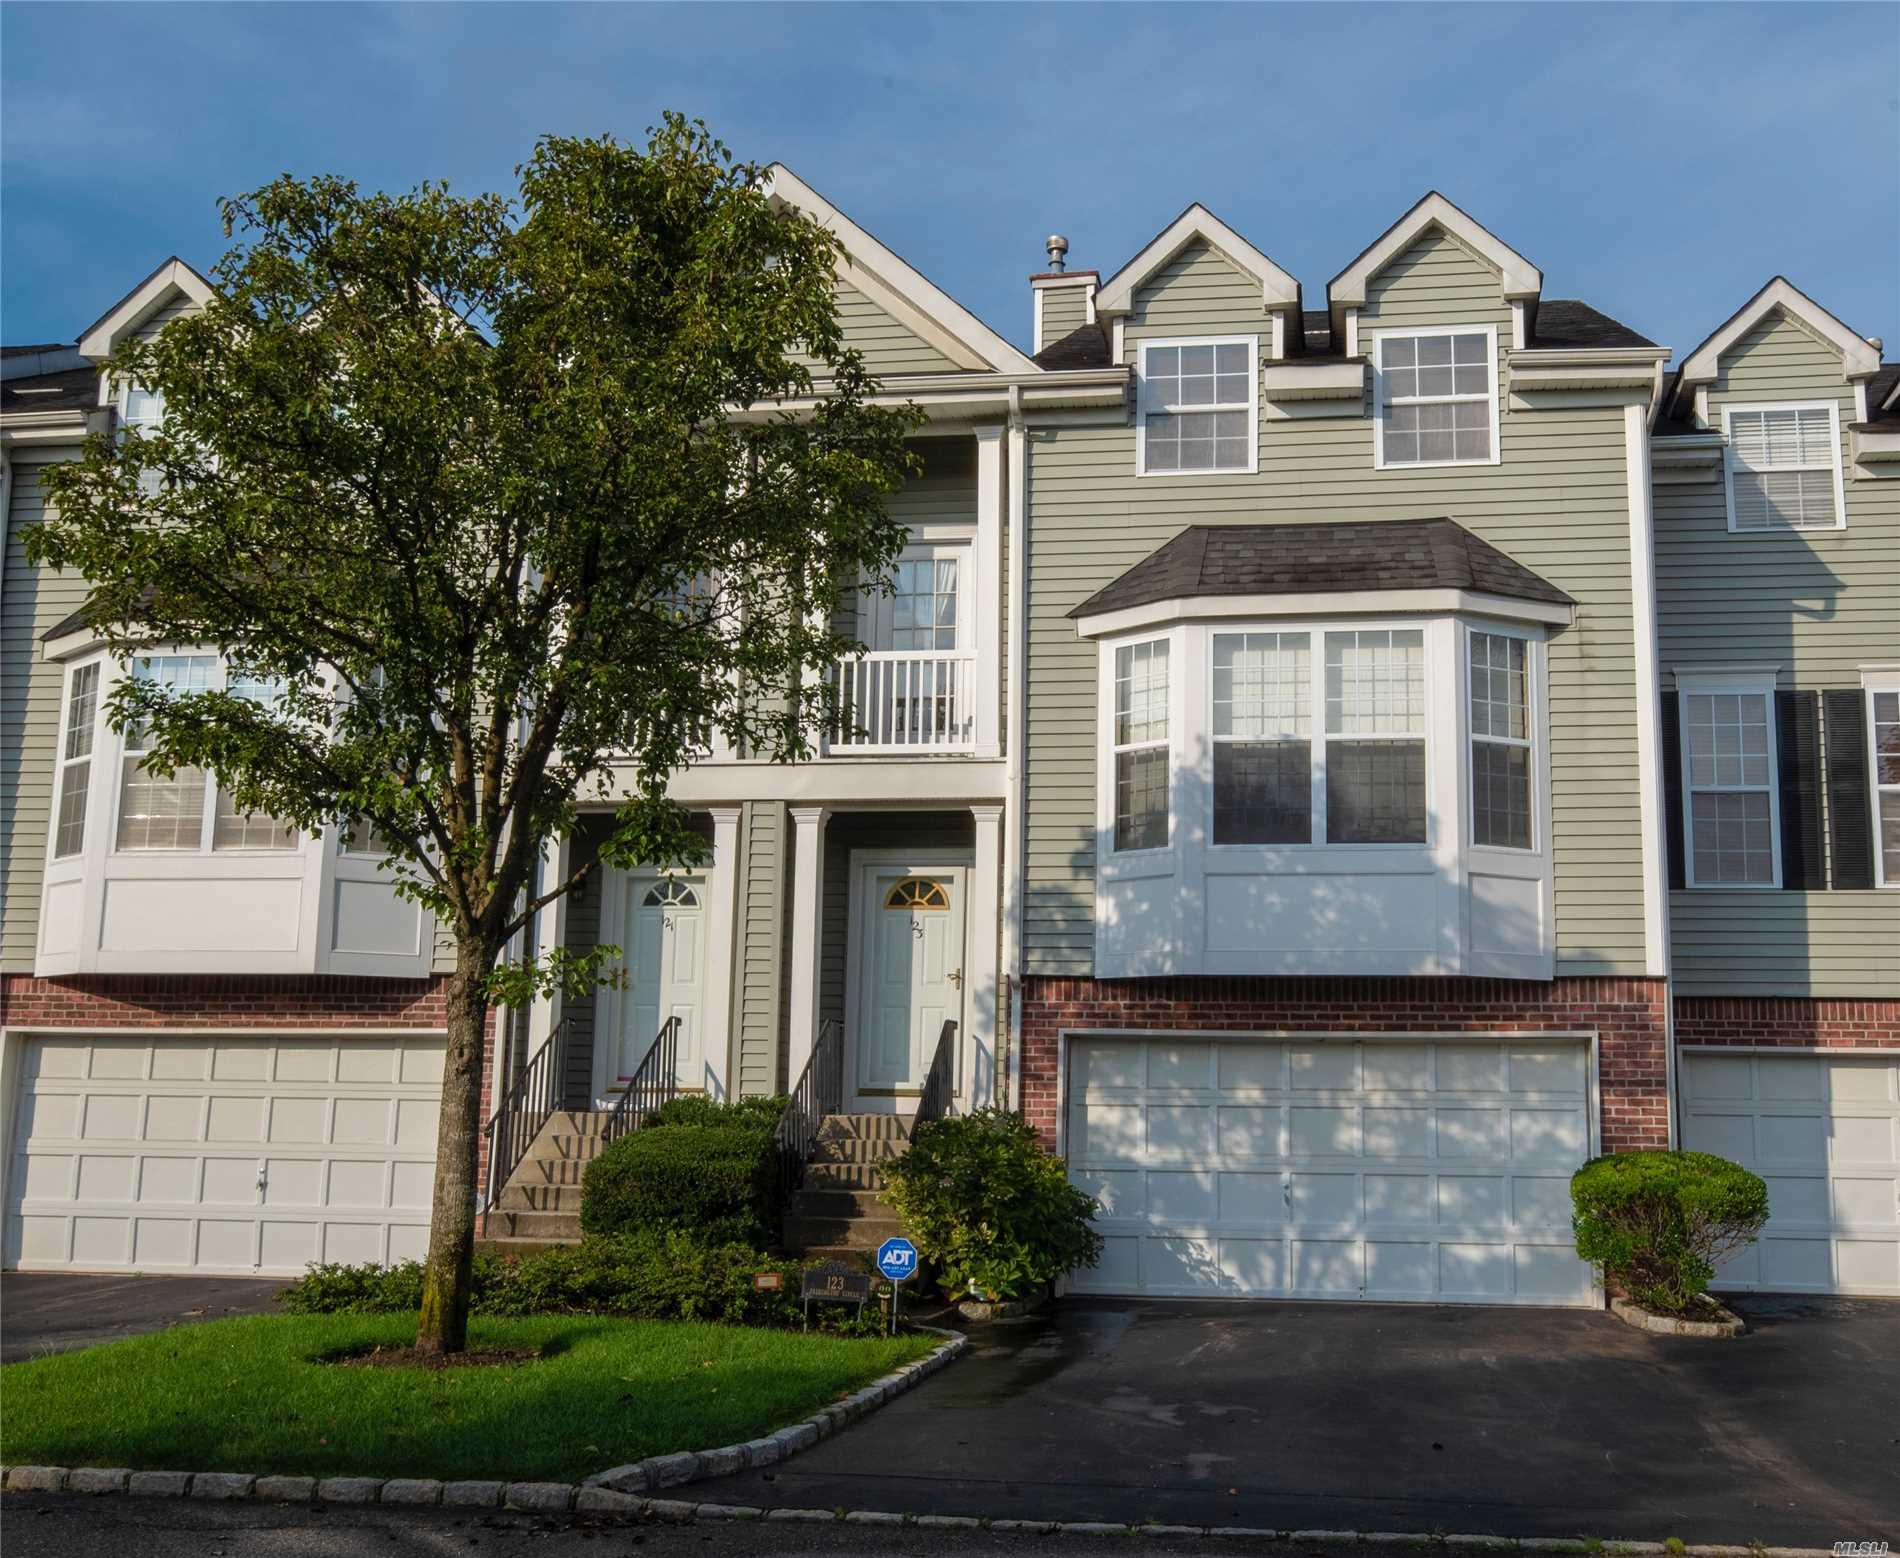 Windcrest Gated Private Community!! Townhouse Essex Model Offers Eik, Lr/Dr, Office, 3 Brs, Mbr W/Bath & W/I Closets, Basement, Cac, Freshly Painted, 2 Car Garage, Smithtown Schools, Must See!!!